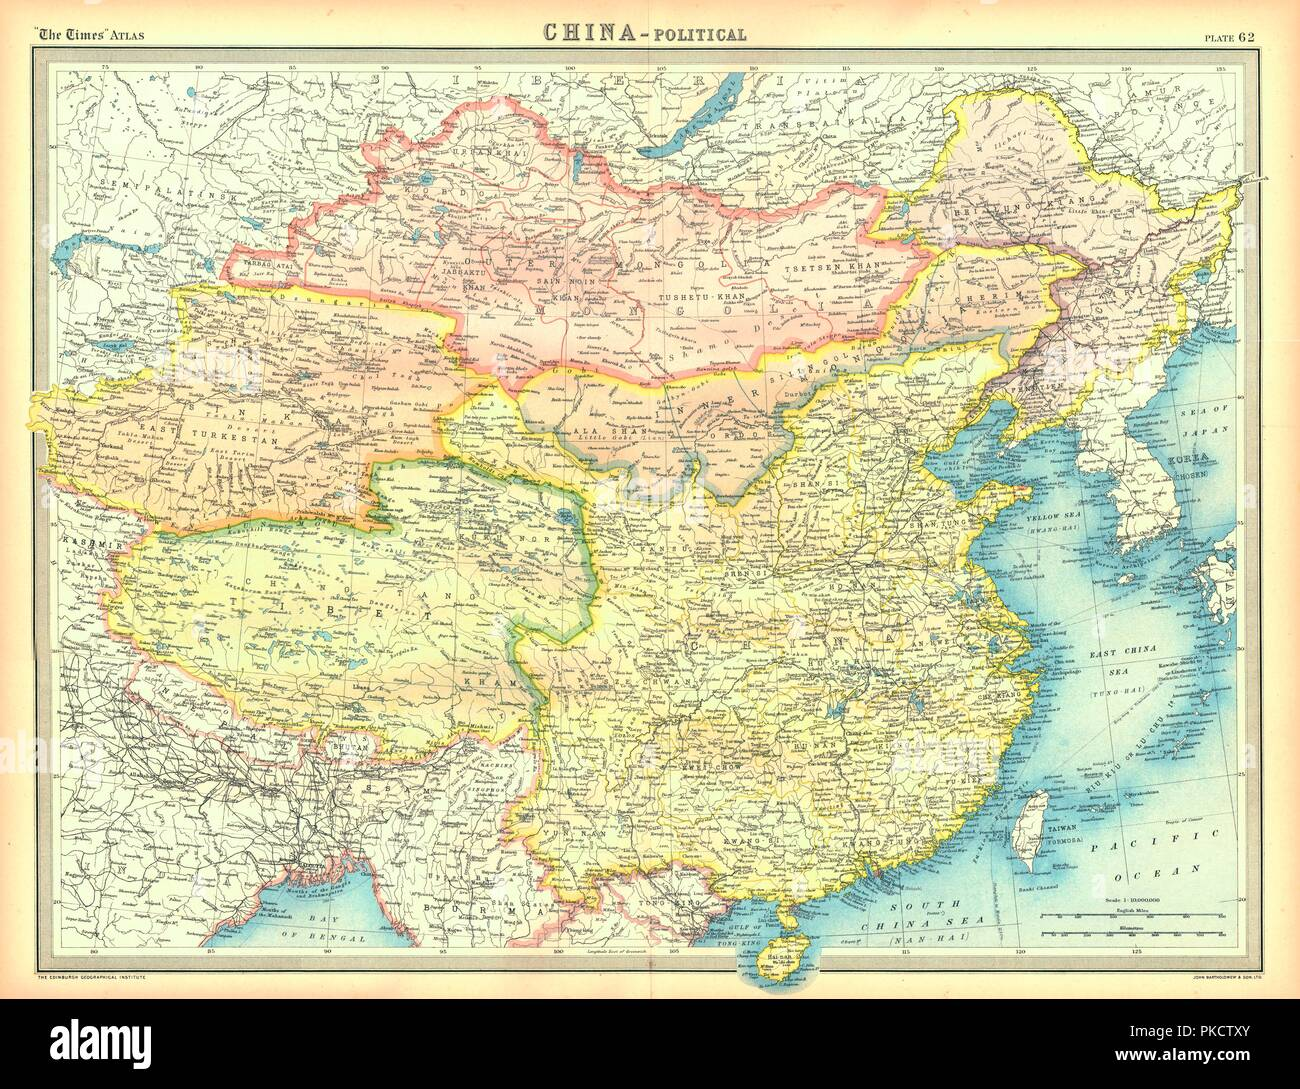 Map Of China And Mongolia.Political Map Of China Map Showing China Mongolia East Turkestan